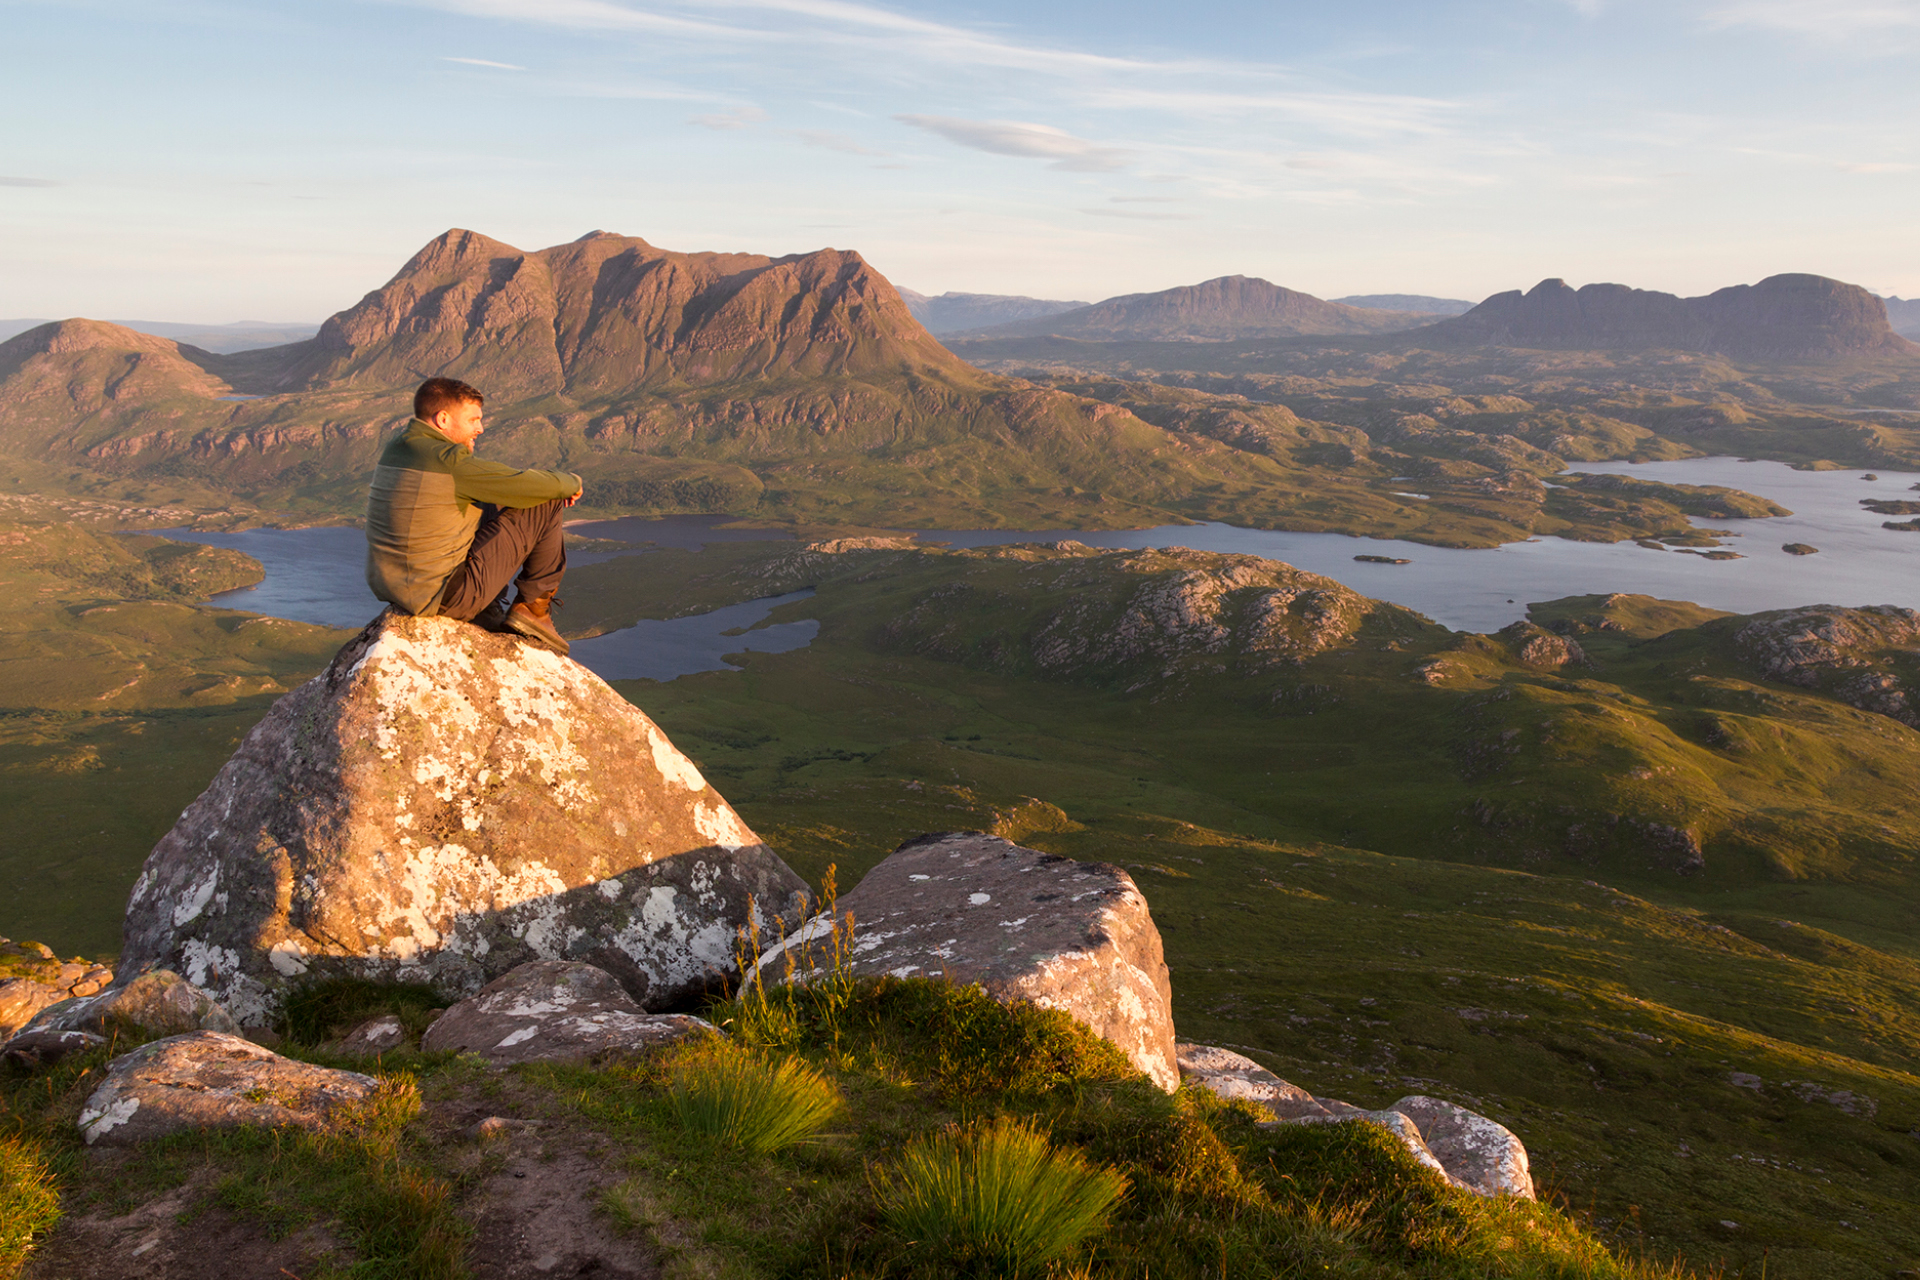 Rewilding makes us healthier. - People's health and wellbeing can be transformed by spending time in wild nature. A flourishing natural world helps us all feel better and especially supports children's physical and personal development.